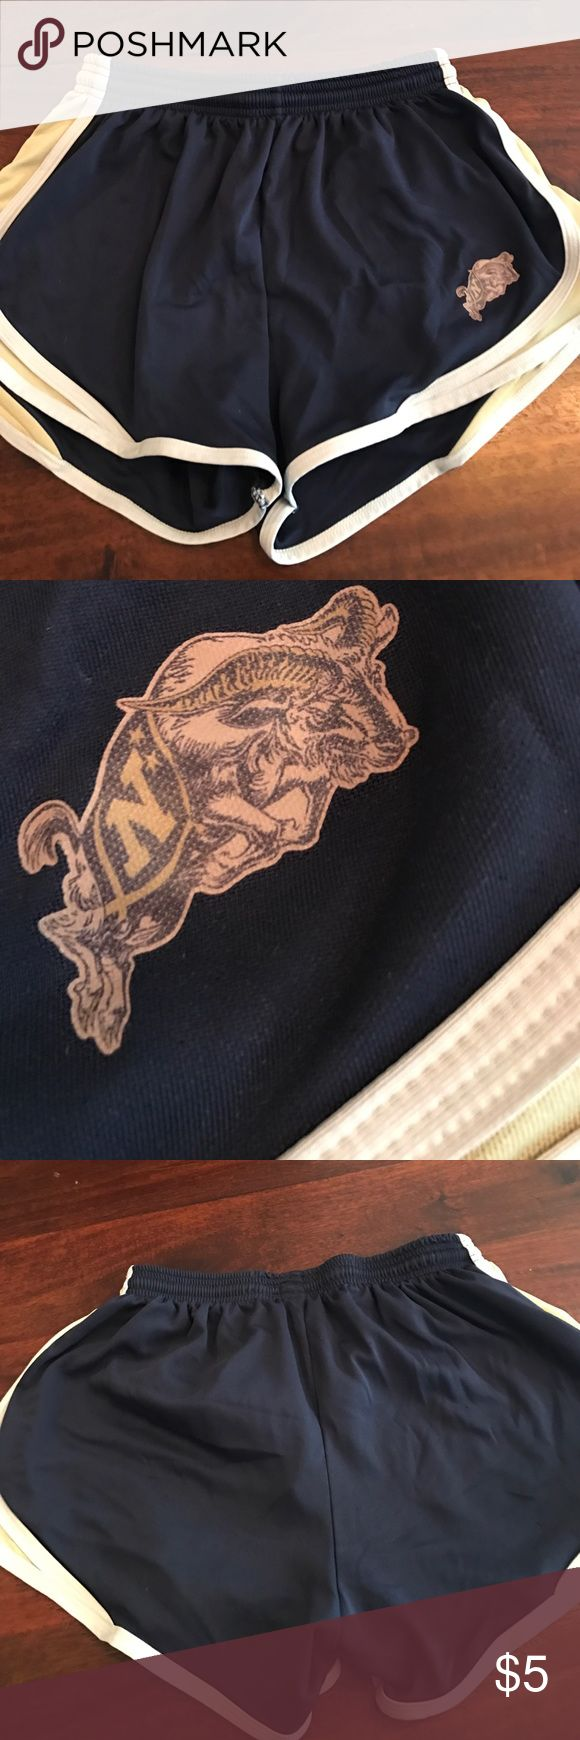 USNA Navy athletic shorts unlined size large This is a pair of navy blue nylon athletic shorts with gold and white trim. It has the US Naval Academy goat logo on the bottom. They have an elastic waist with a drawstring and are size large ladies fit 2 win Shorts